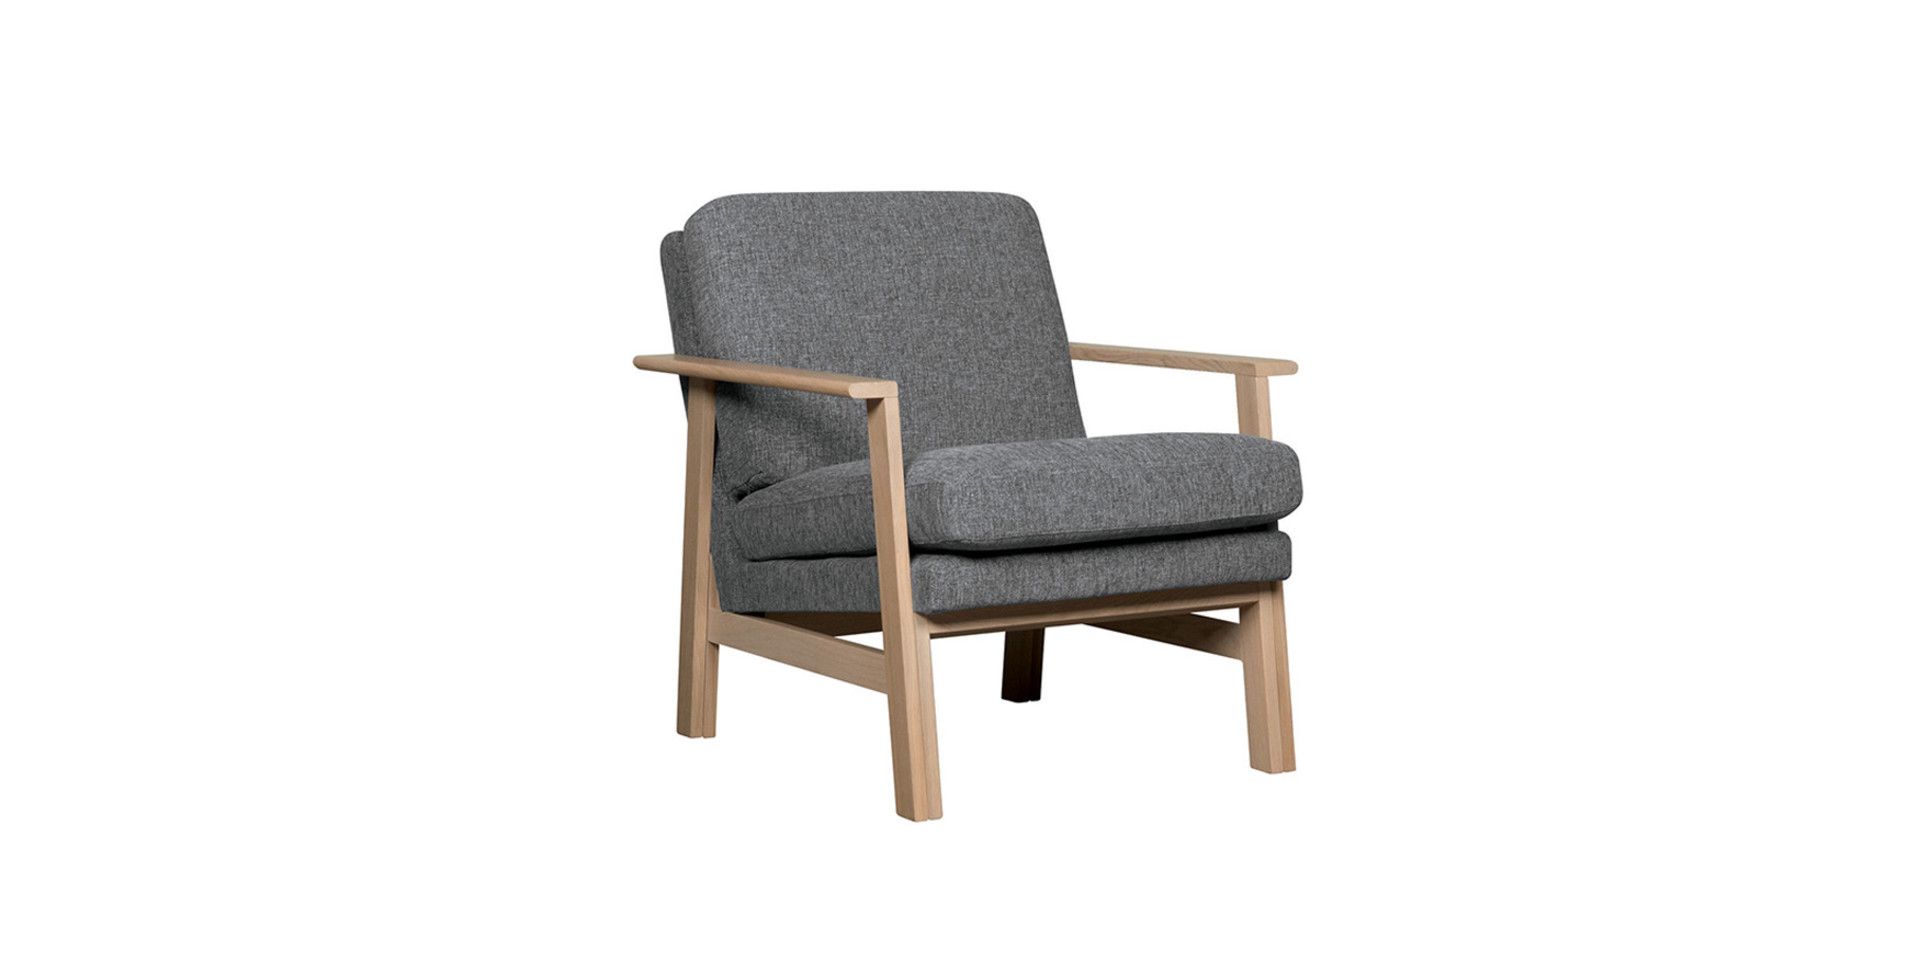 FINE_element55_2xwooden_armrests_king6_grey_2_0